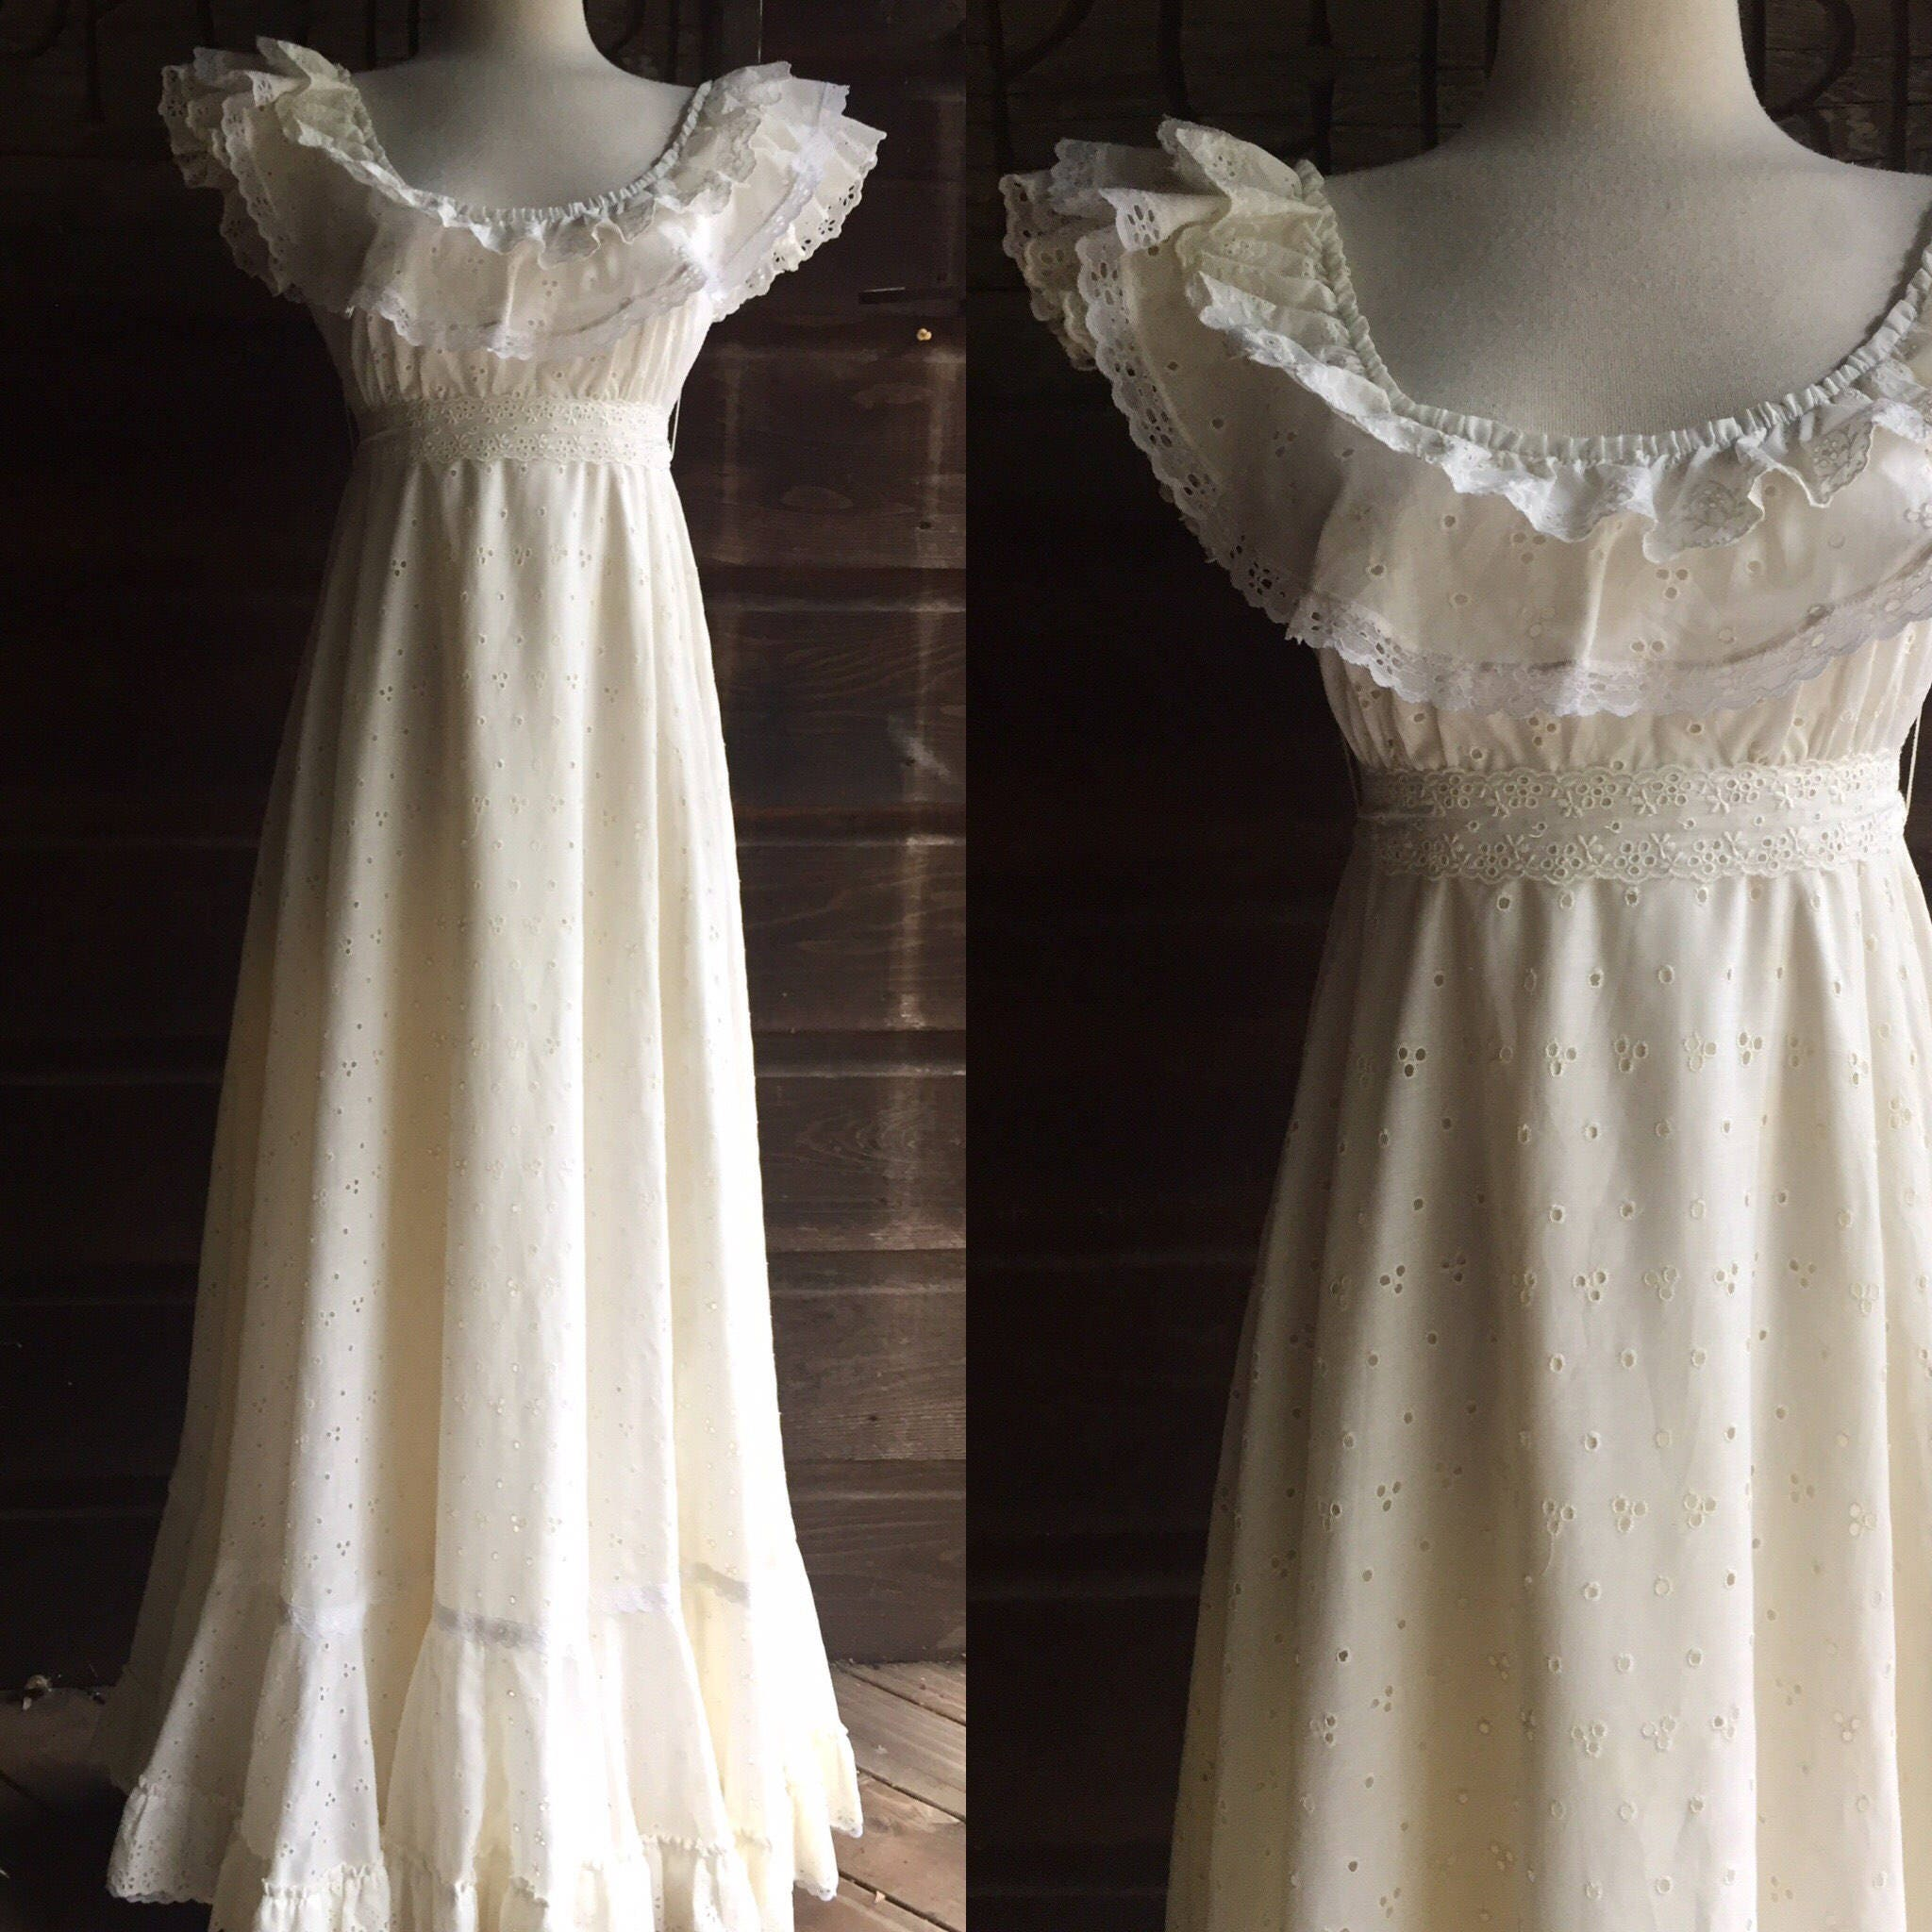 s eyelet boho wedding dress 70s peasant style wedding dress s Eyelet Boho Wedding Dress 70s Bohemian Peasant Dress Eyelet Hippie Wedding Maxi Dress by Haizfeld s